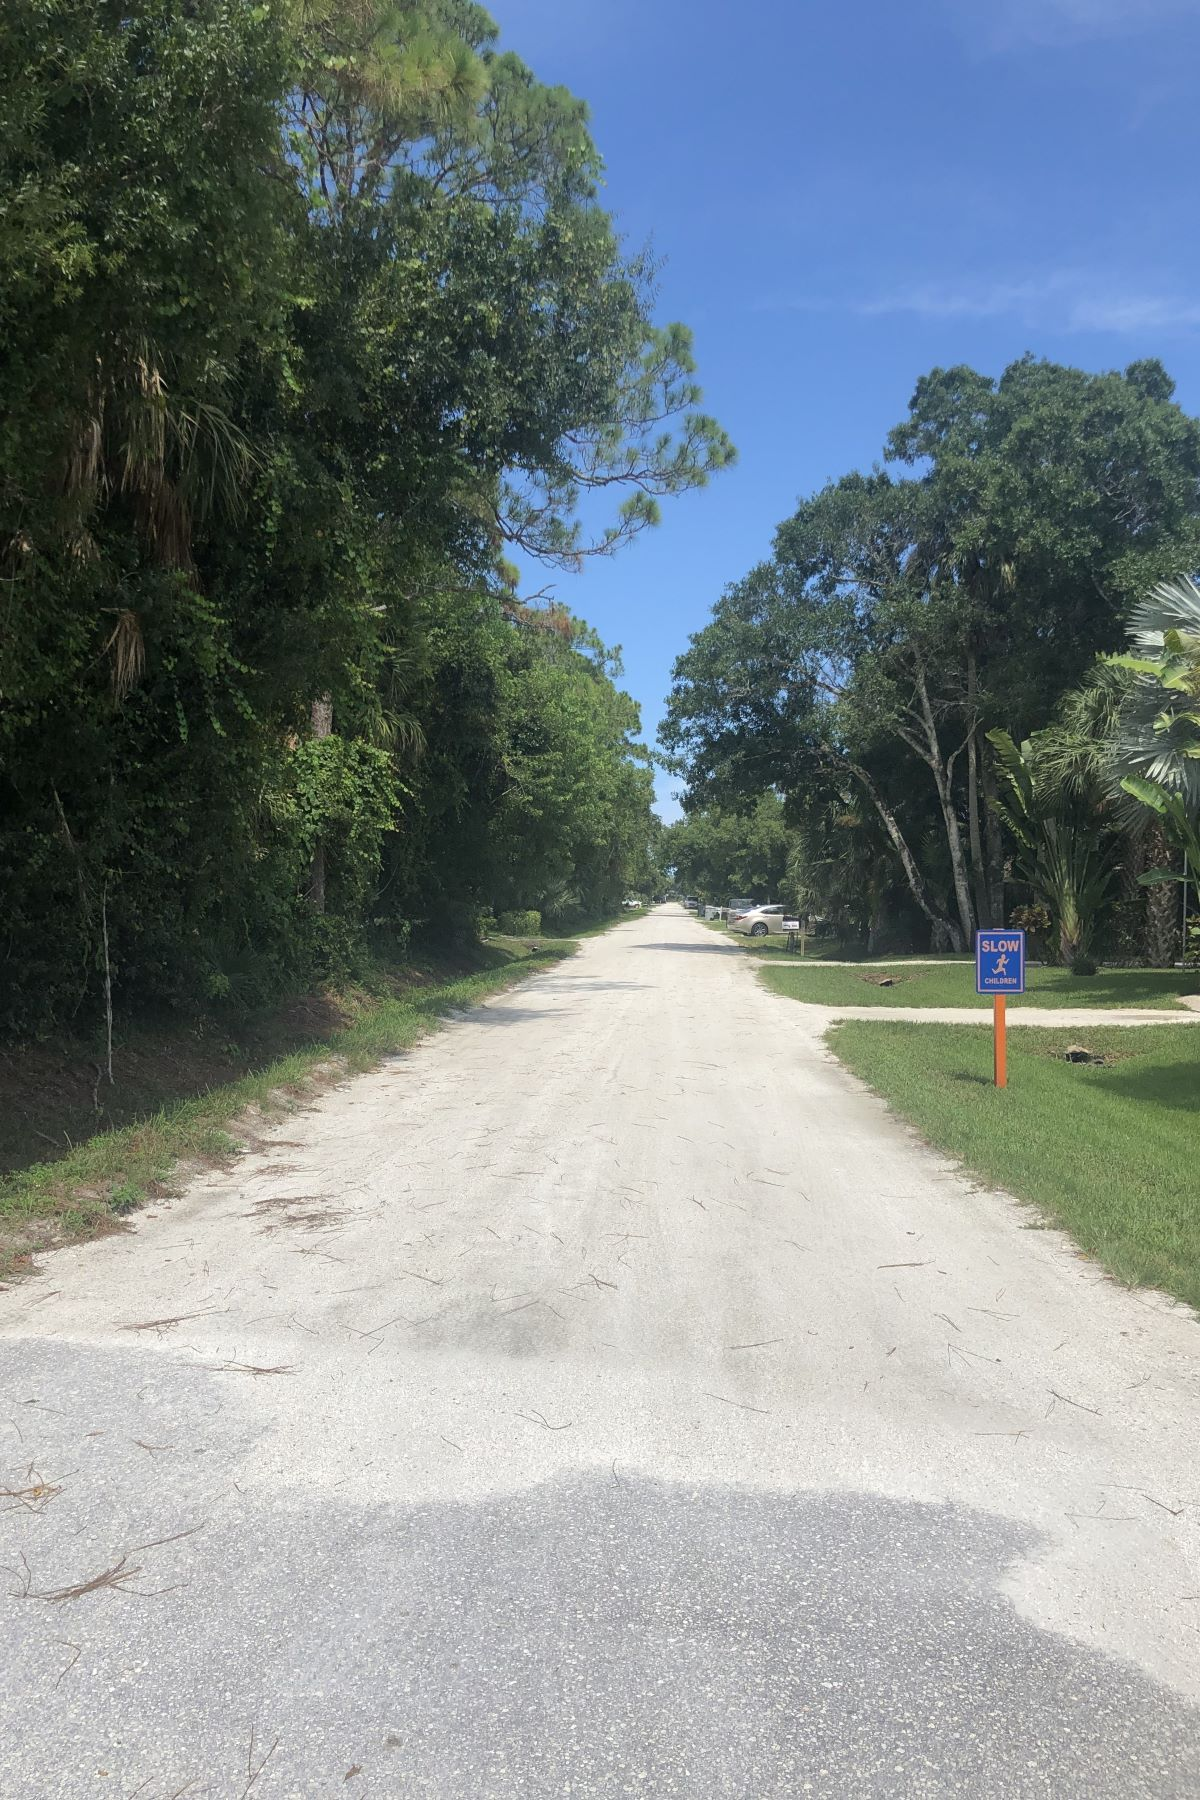 Additional photo for property listing at 6206 7th Street Vero Beach, Florida 32968 United States